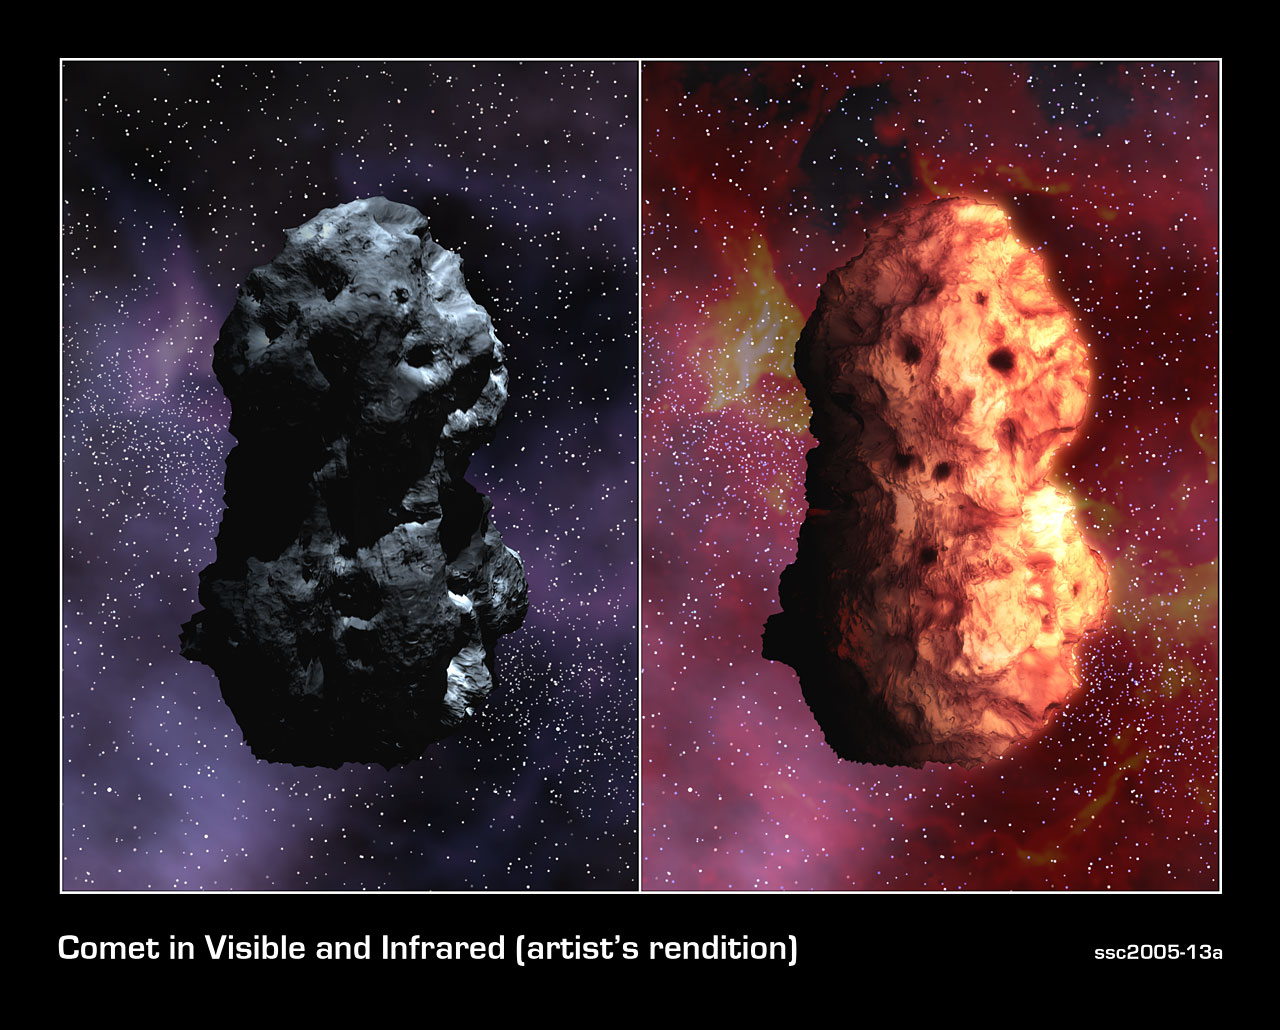 Visible and Infrared Views of Comet Tempel 1 (Artist's Concept)